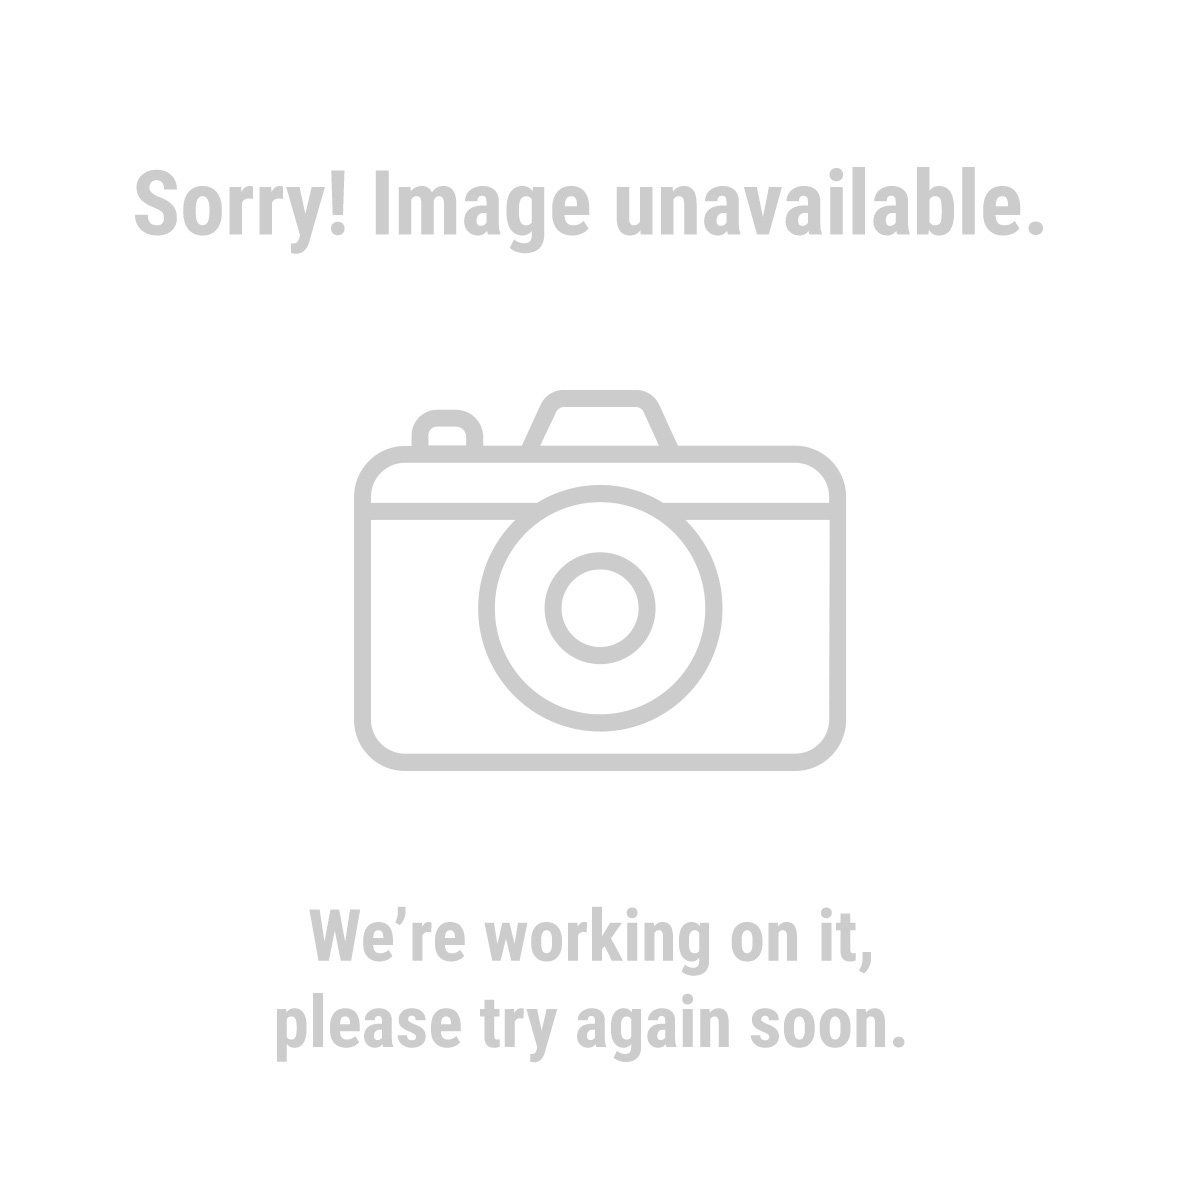 "Pittsburgh 67913 7 Piece 1/2"" Drive SAE Impact Swivel Socket Set"